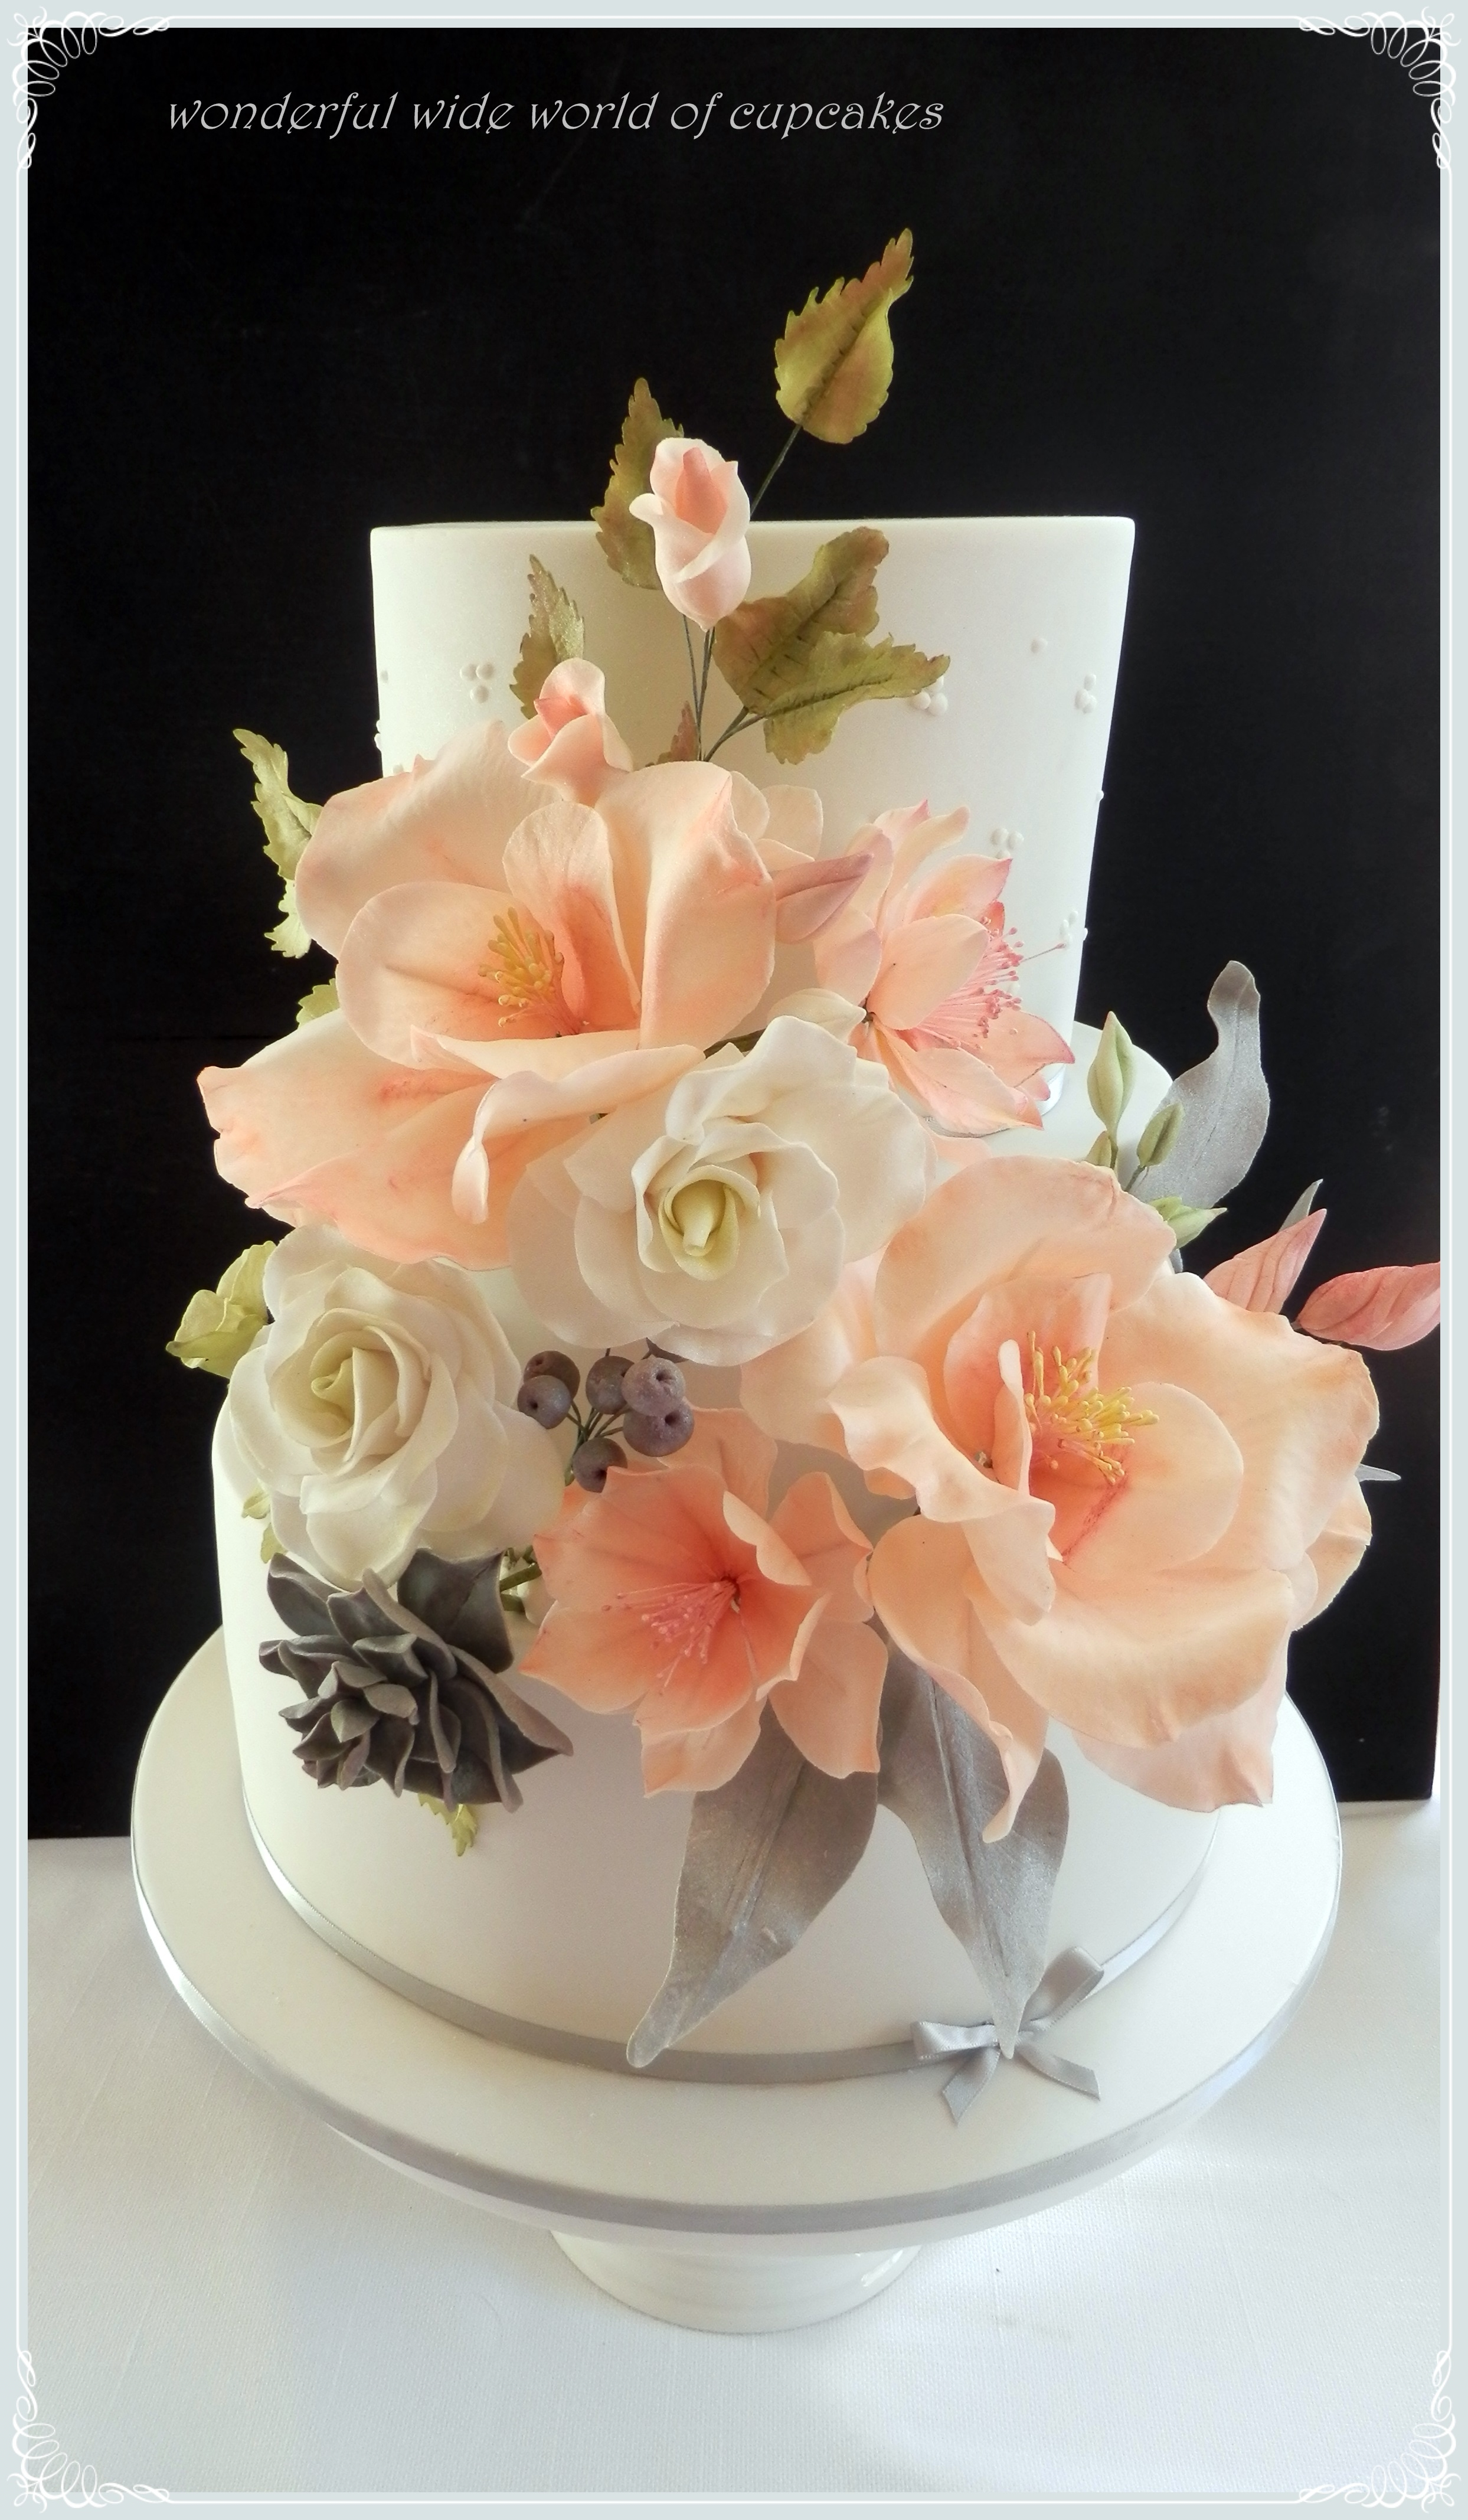 3 Tier Chocolate Wedding Cake With A Riot Of Sugar Flowers To Match The  Brides Bouquet. This Was A Little Bit Special As The Cake Was Made For My  Husbands ...